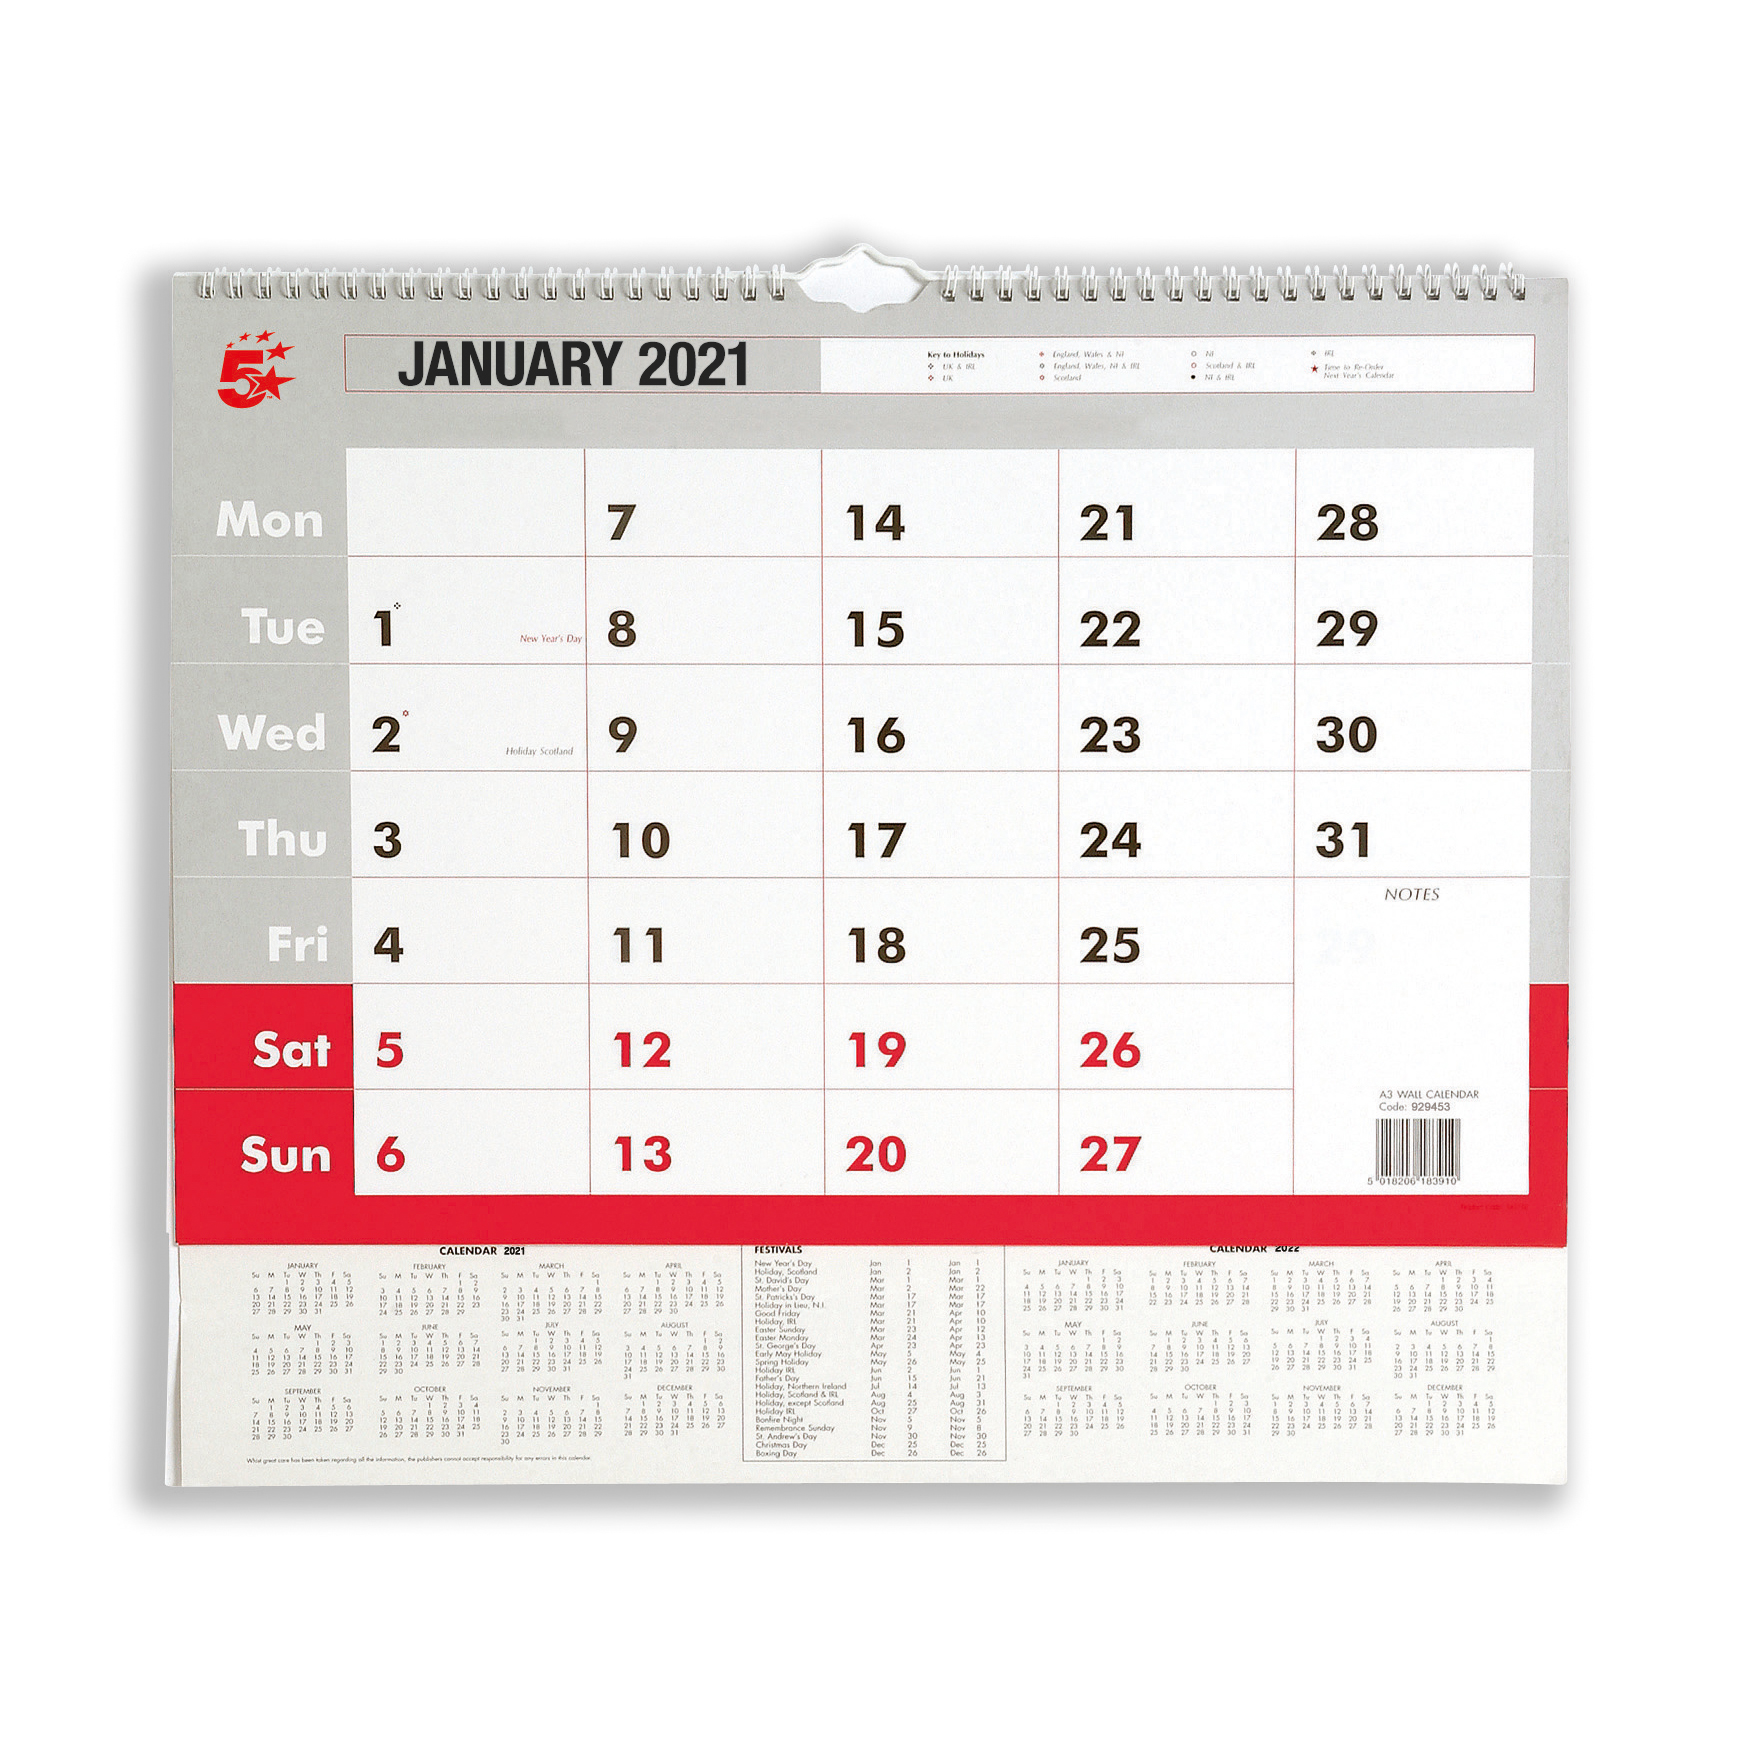 Calendars 5 Star Office 2021 Wall Calendar Month to View Wirebound 135gsm Paper A3 297x420mm White/Red